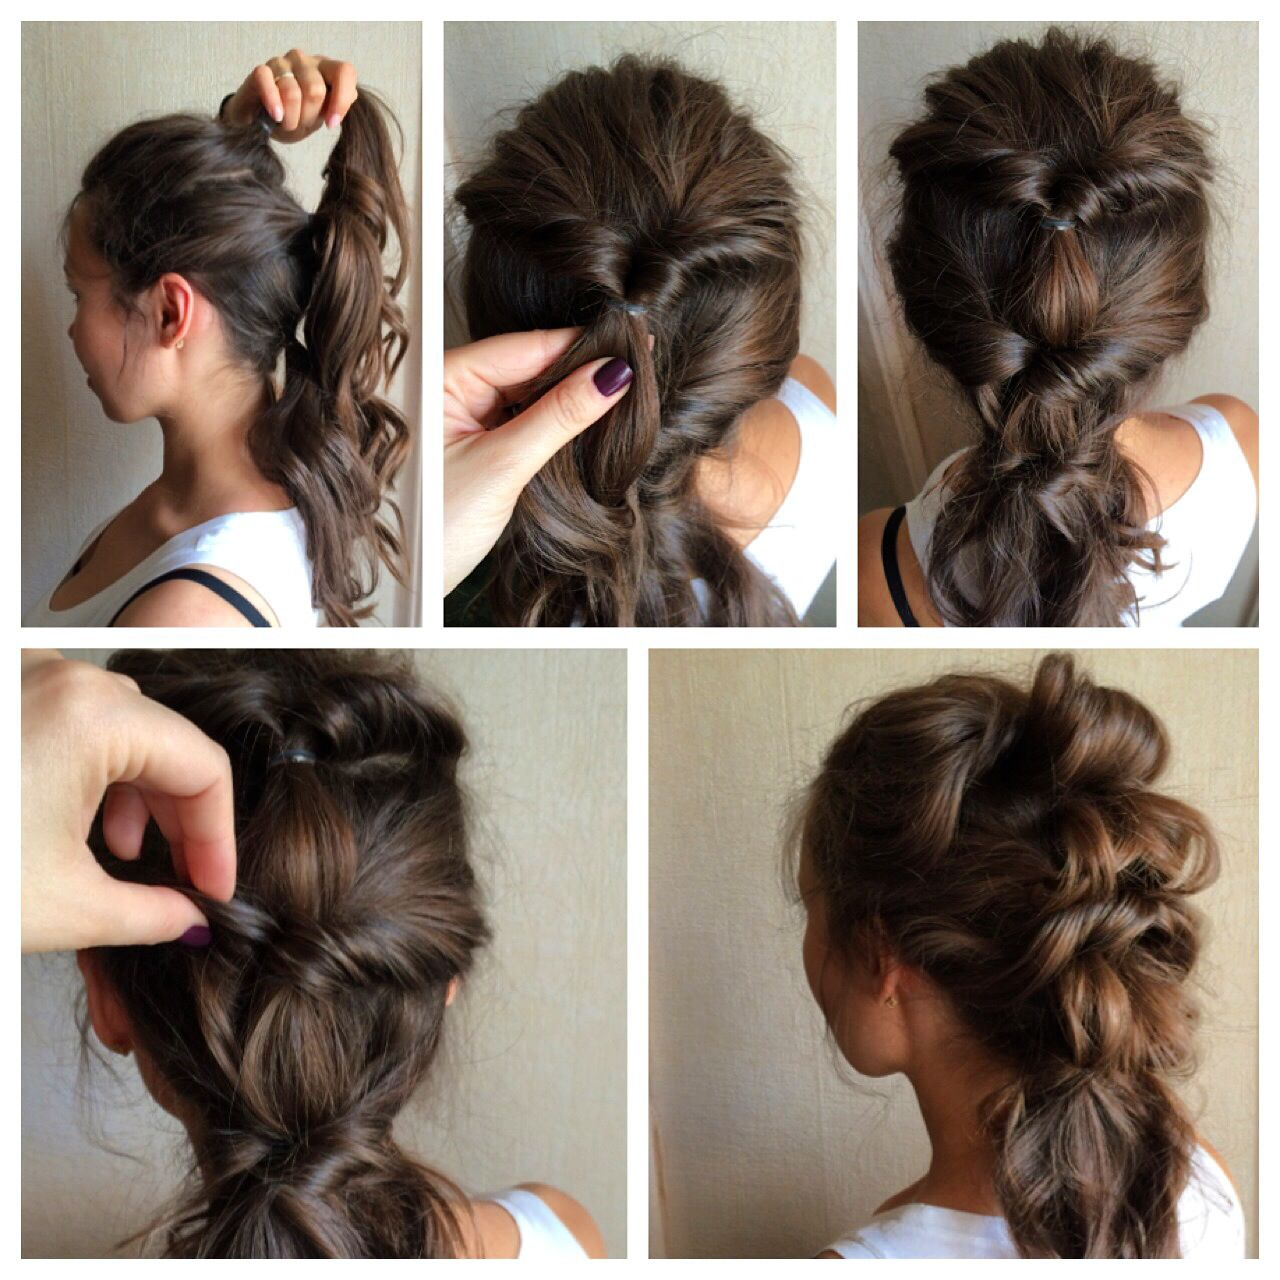 updos hair styles topsy hairstyles for hair hair 3783